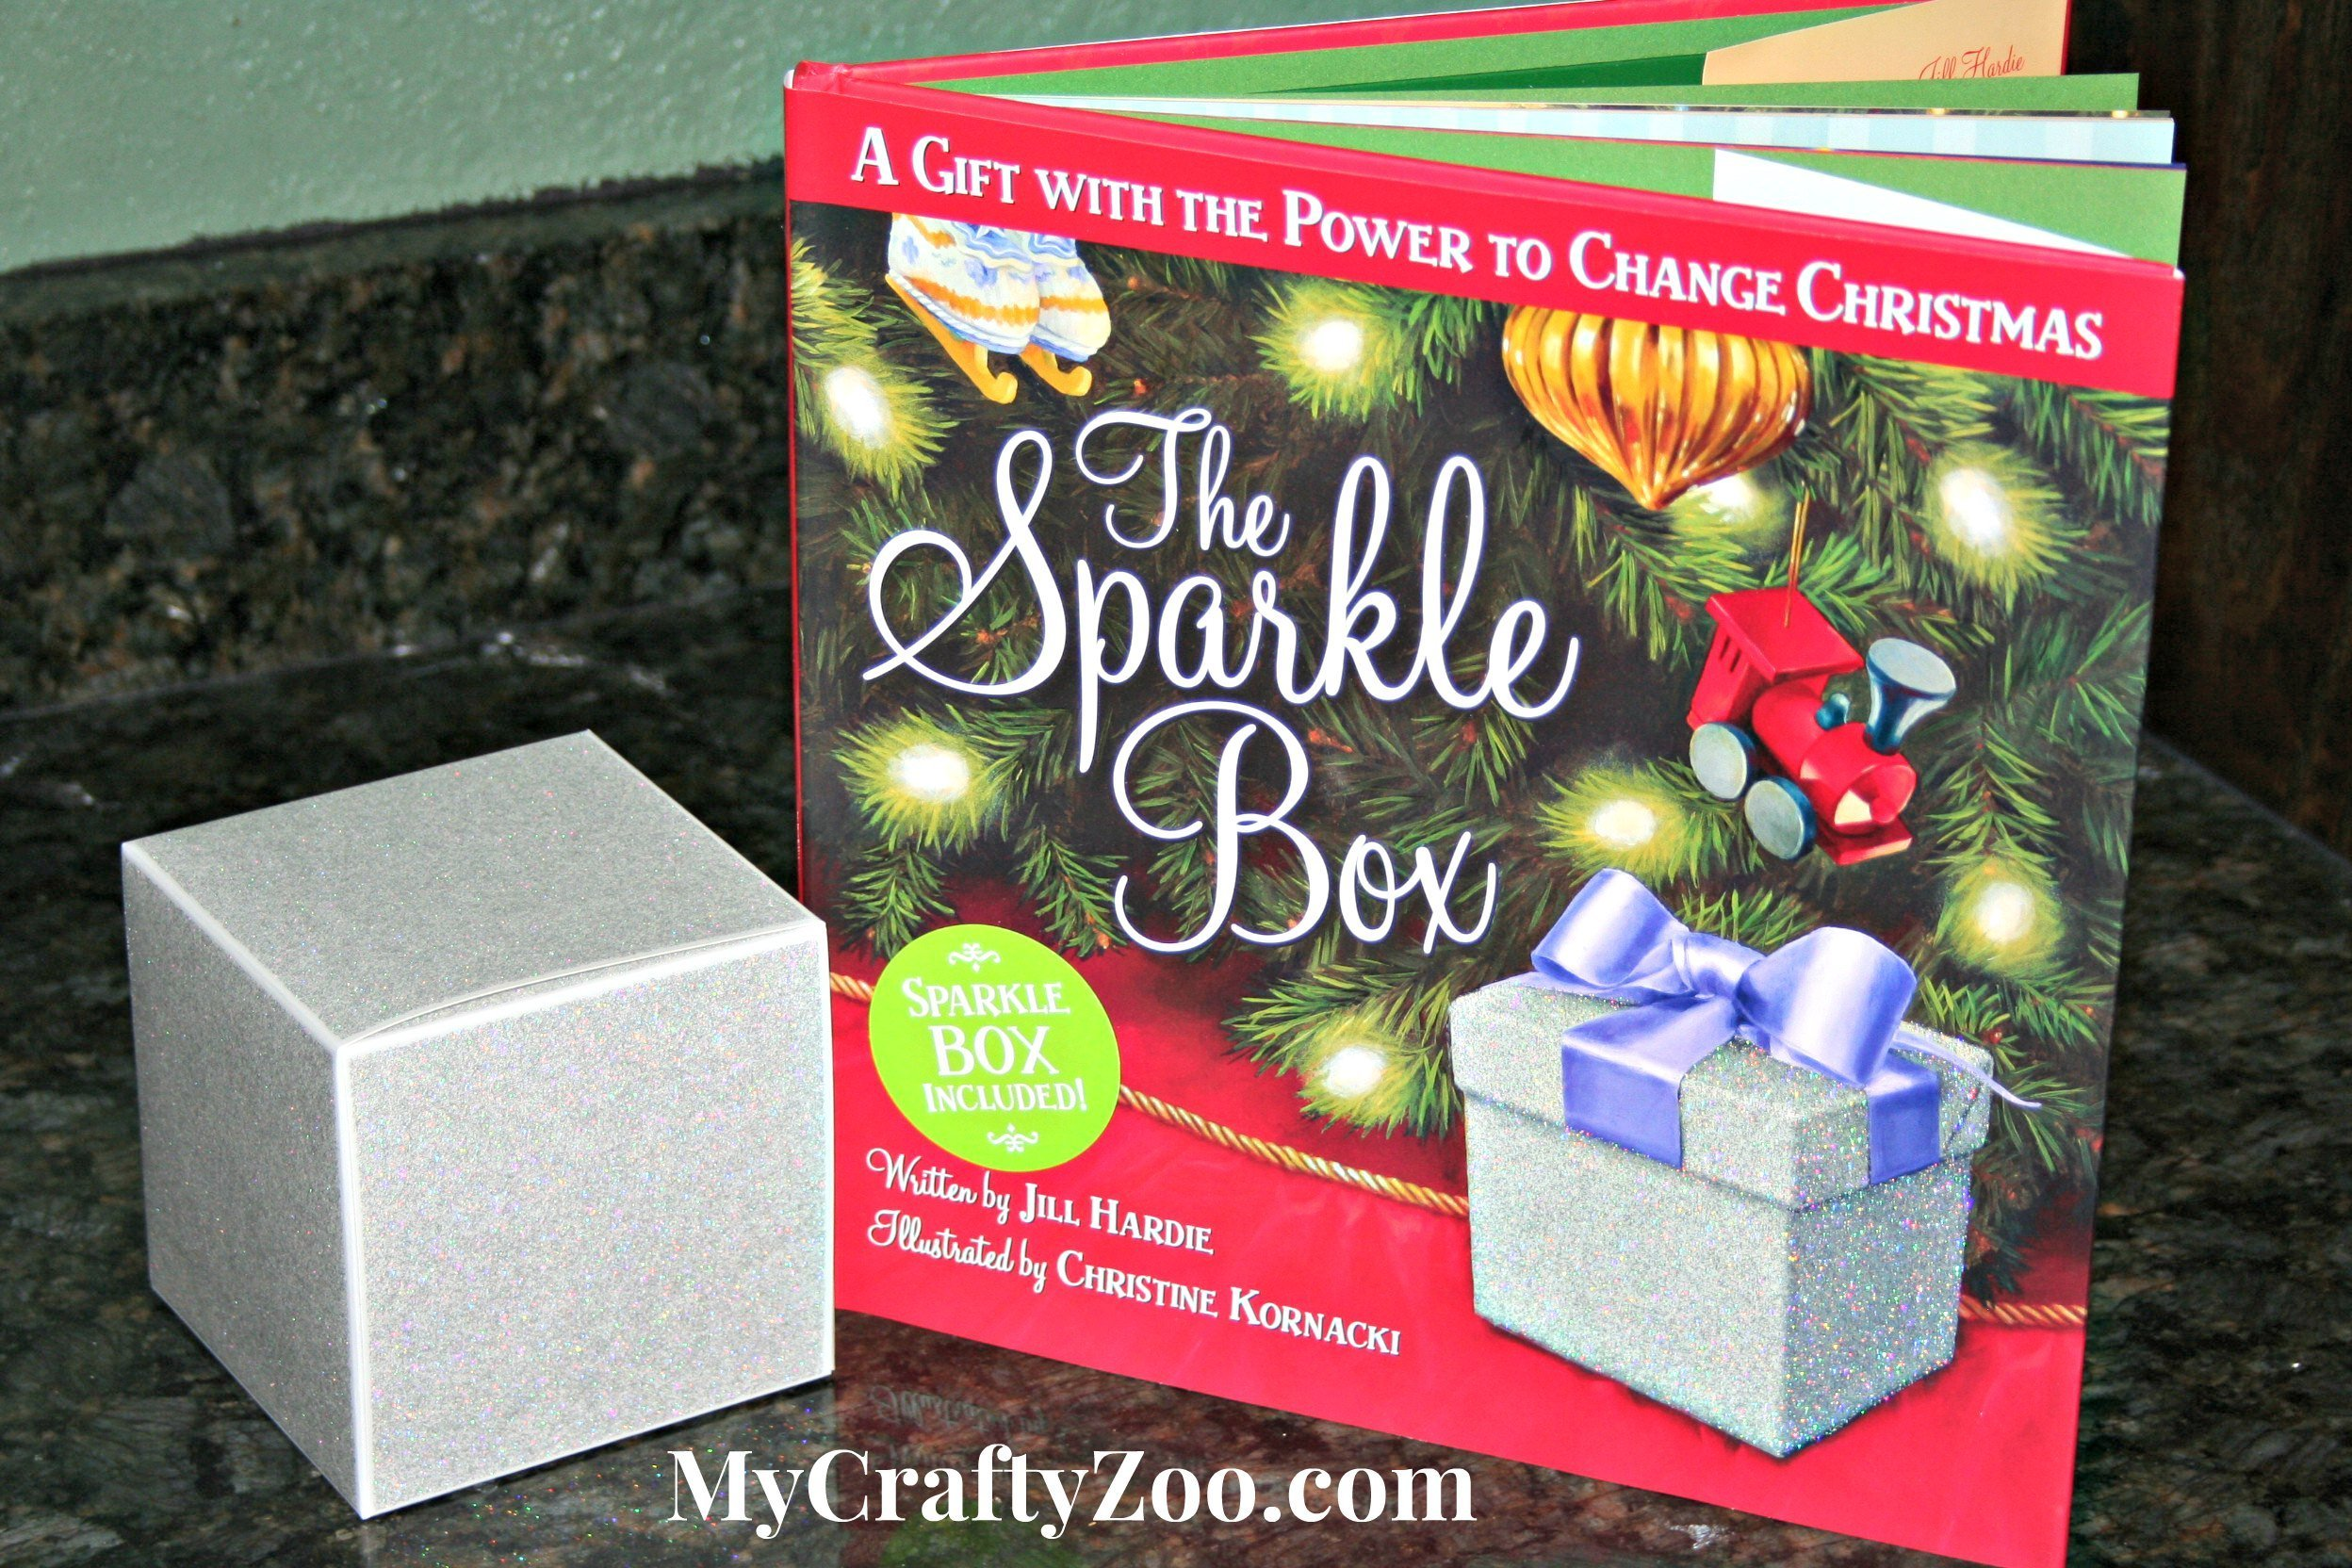 The Sparkle Box @CraftyZoo